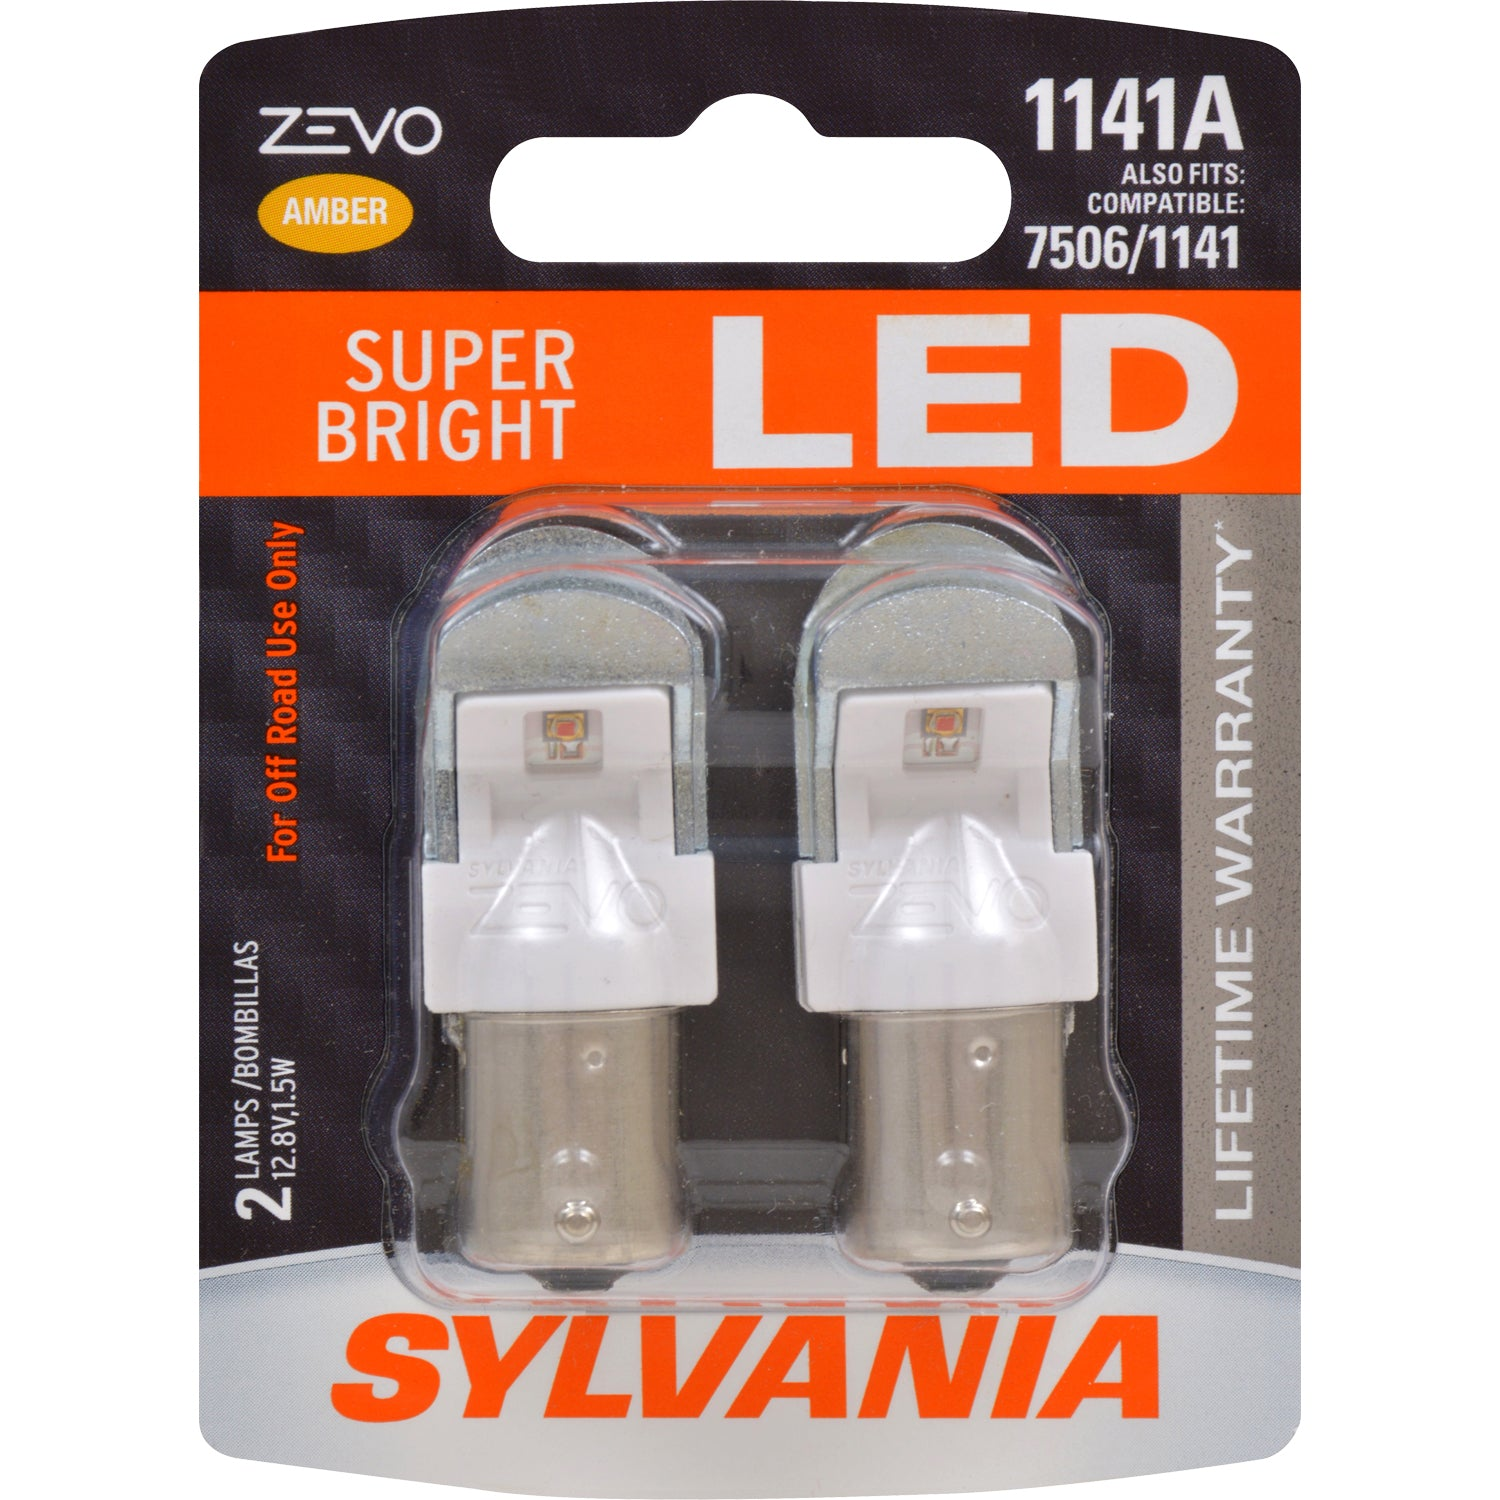 2-PK SYLVANIA ZEVO 1141 Amber LED Automotive Bulb